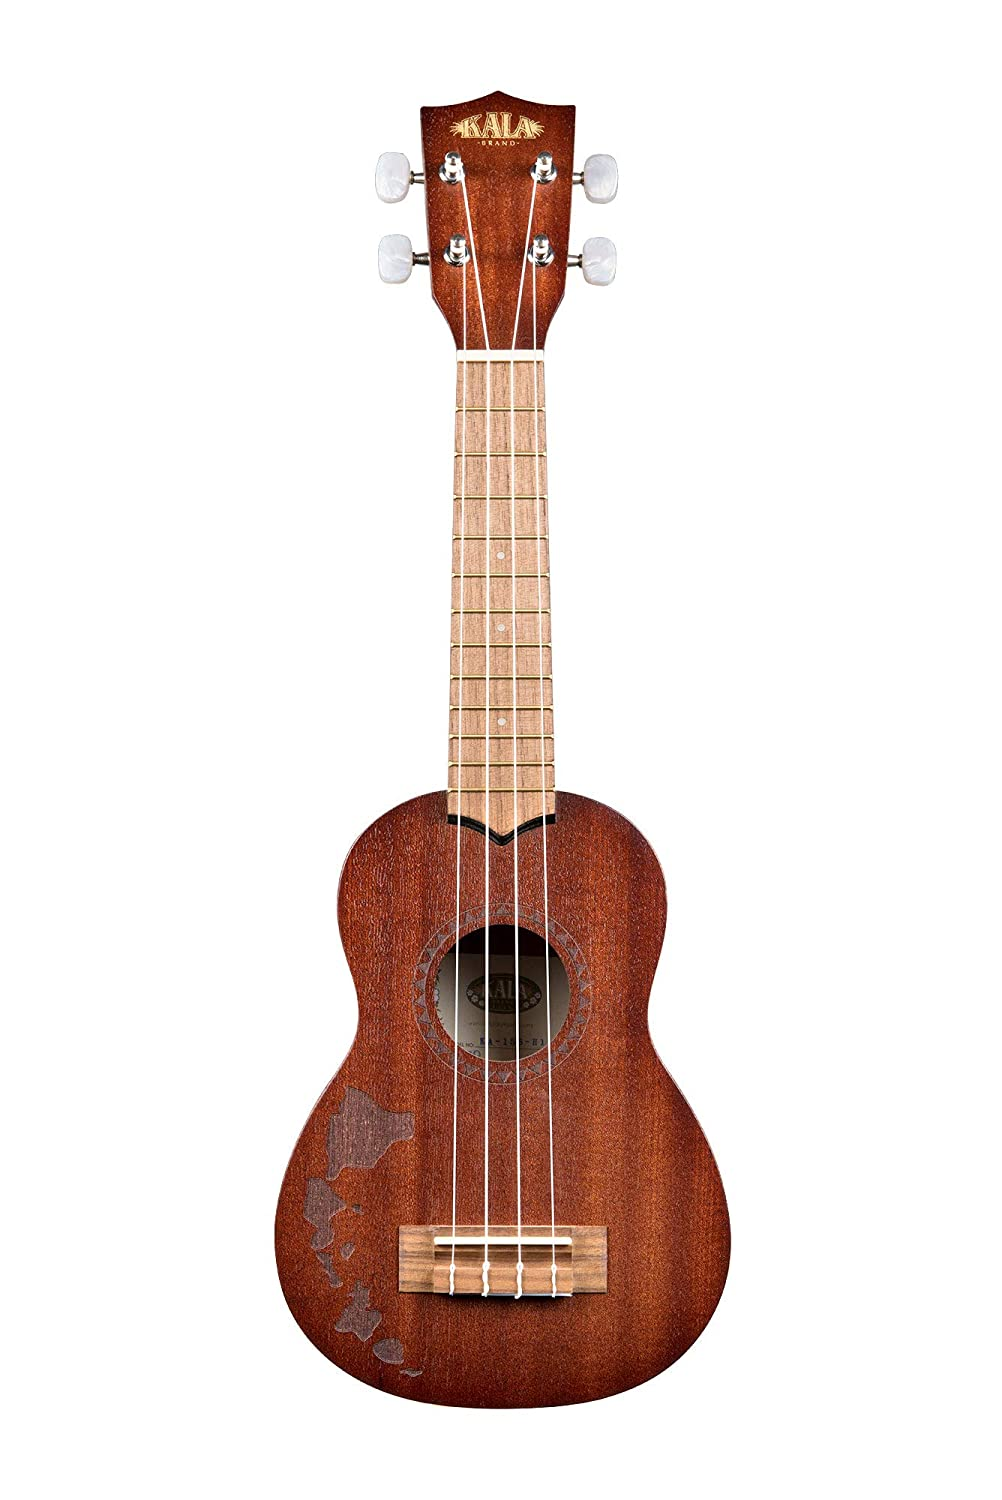 Official Kala Learn to Play Ukulele Concert Starter Kit, Light Mahogany – Includes online lessons, tuner, and app Kala Brand Music Co. KALA-LTP-C